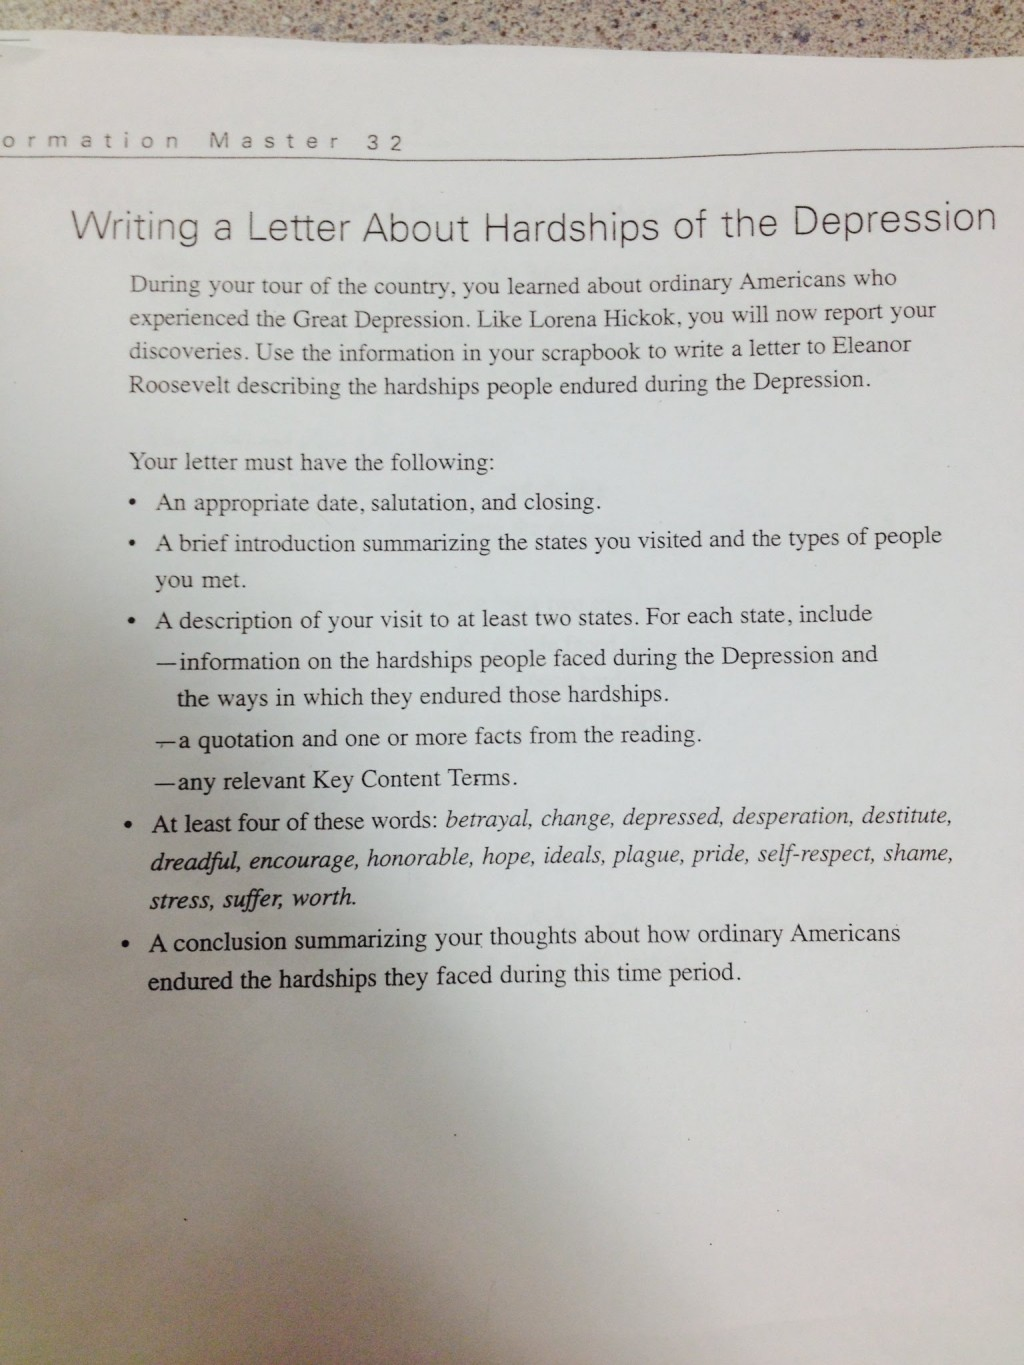 012 Letter Conclusion Of The Great Depression Essay Amazing Large